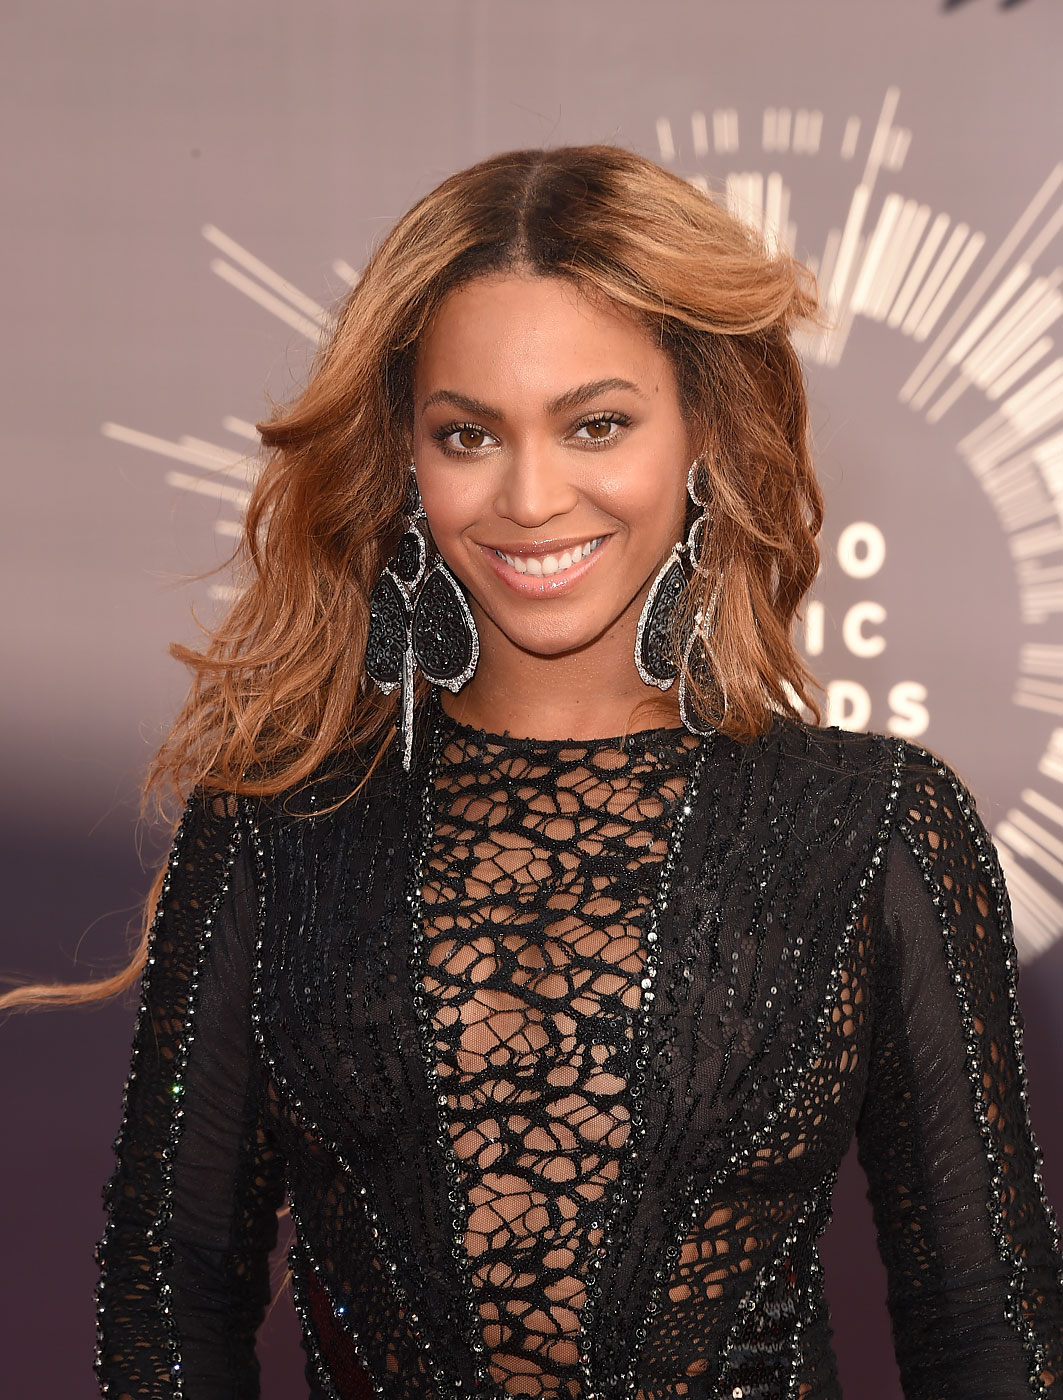 Singer Beyoncé attends the 2014 MTV Video Music Awards in Inglewood, Calif., on Aug. 24, 2014